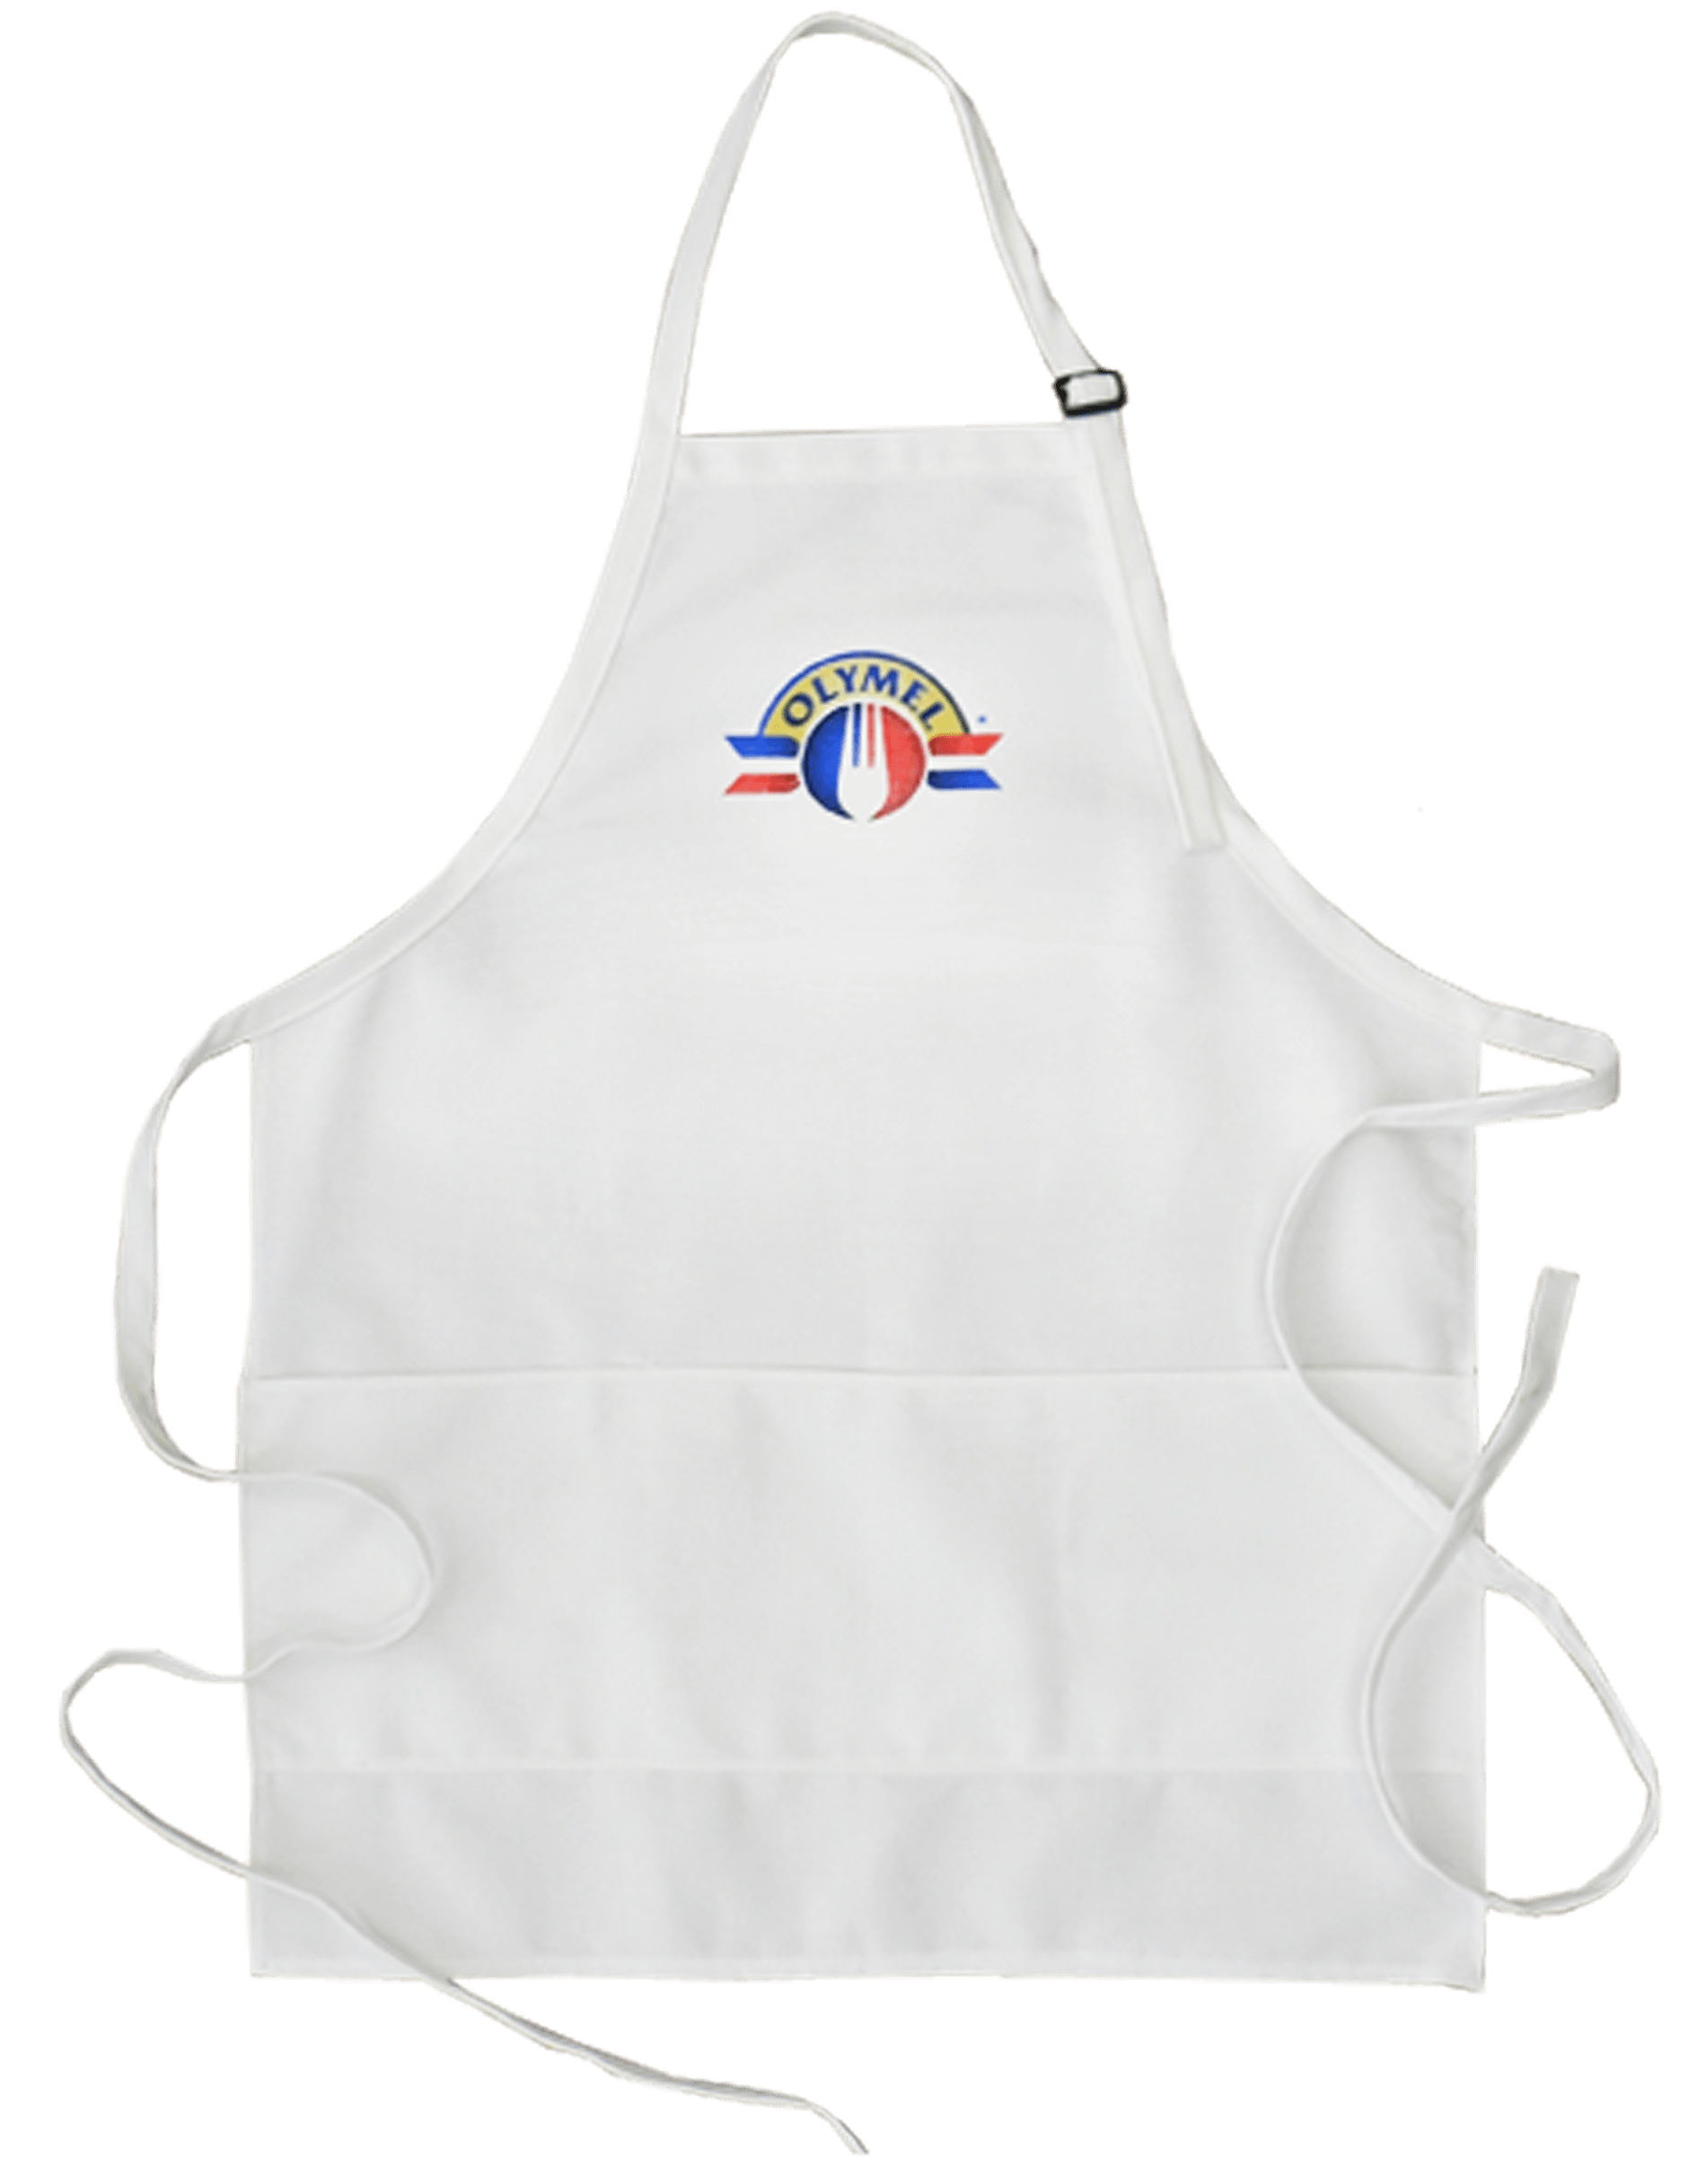 Custom Apron made by Tex-Fab